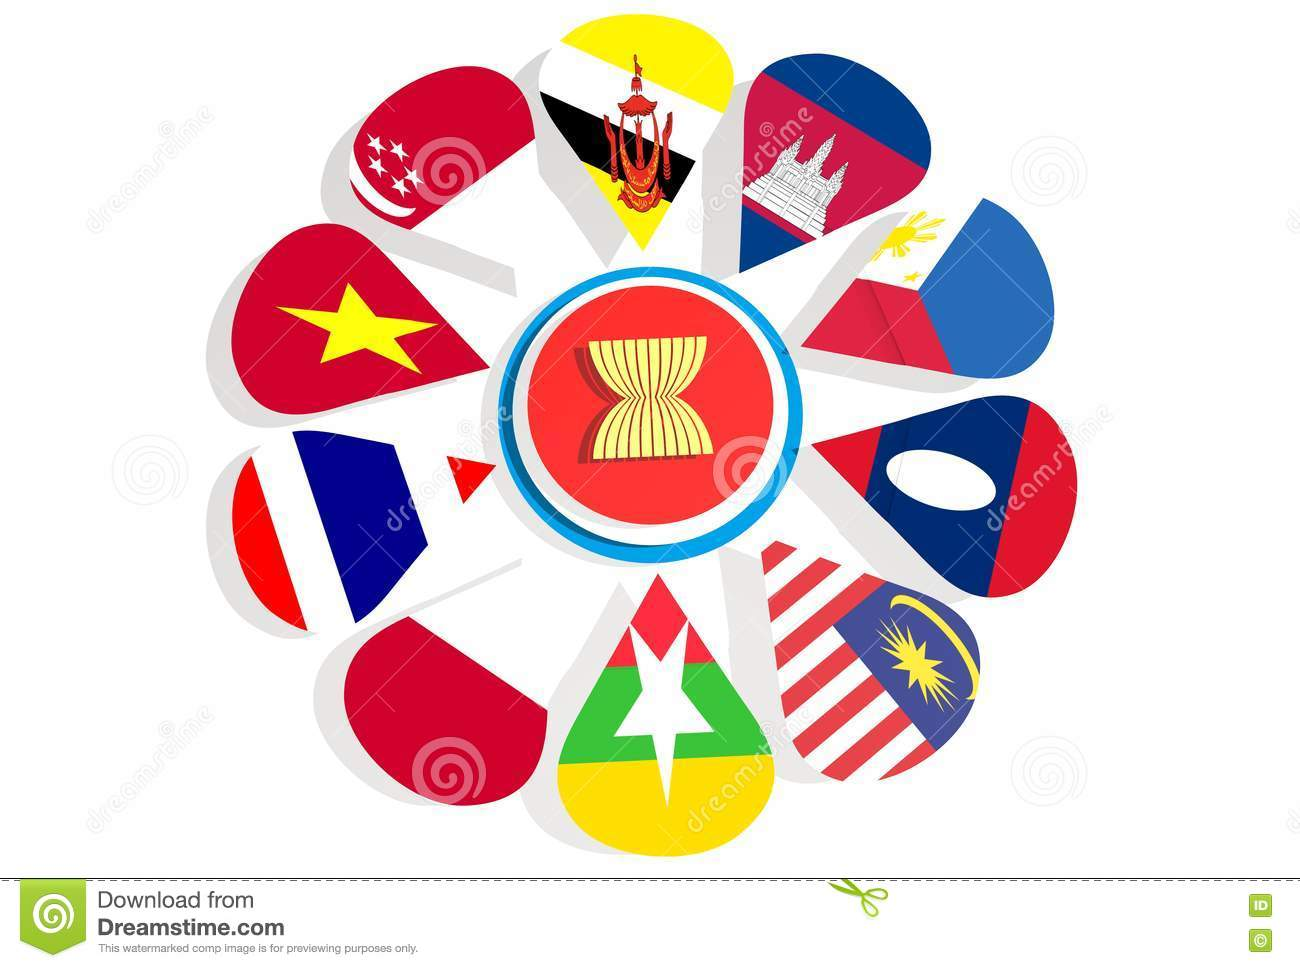 ASEAN - political and economic organization of ten Southeast Asian  countries. Union members flags